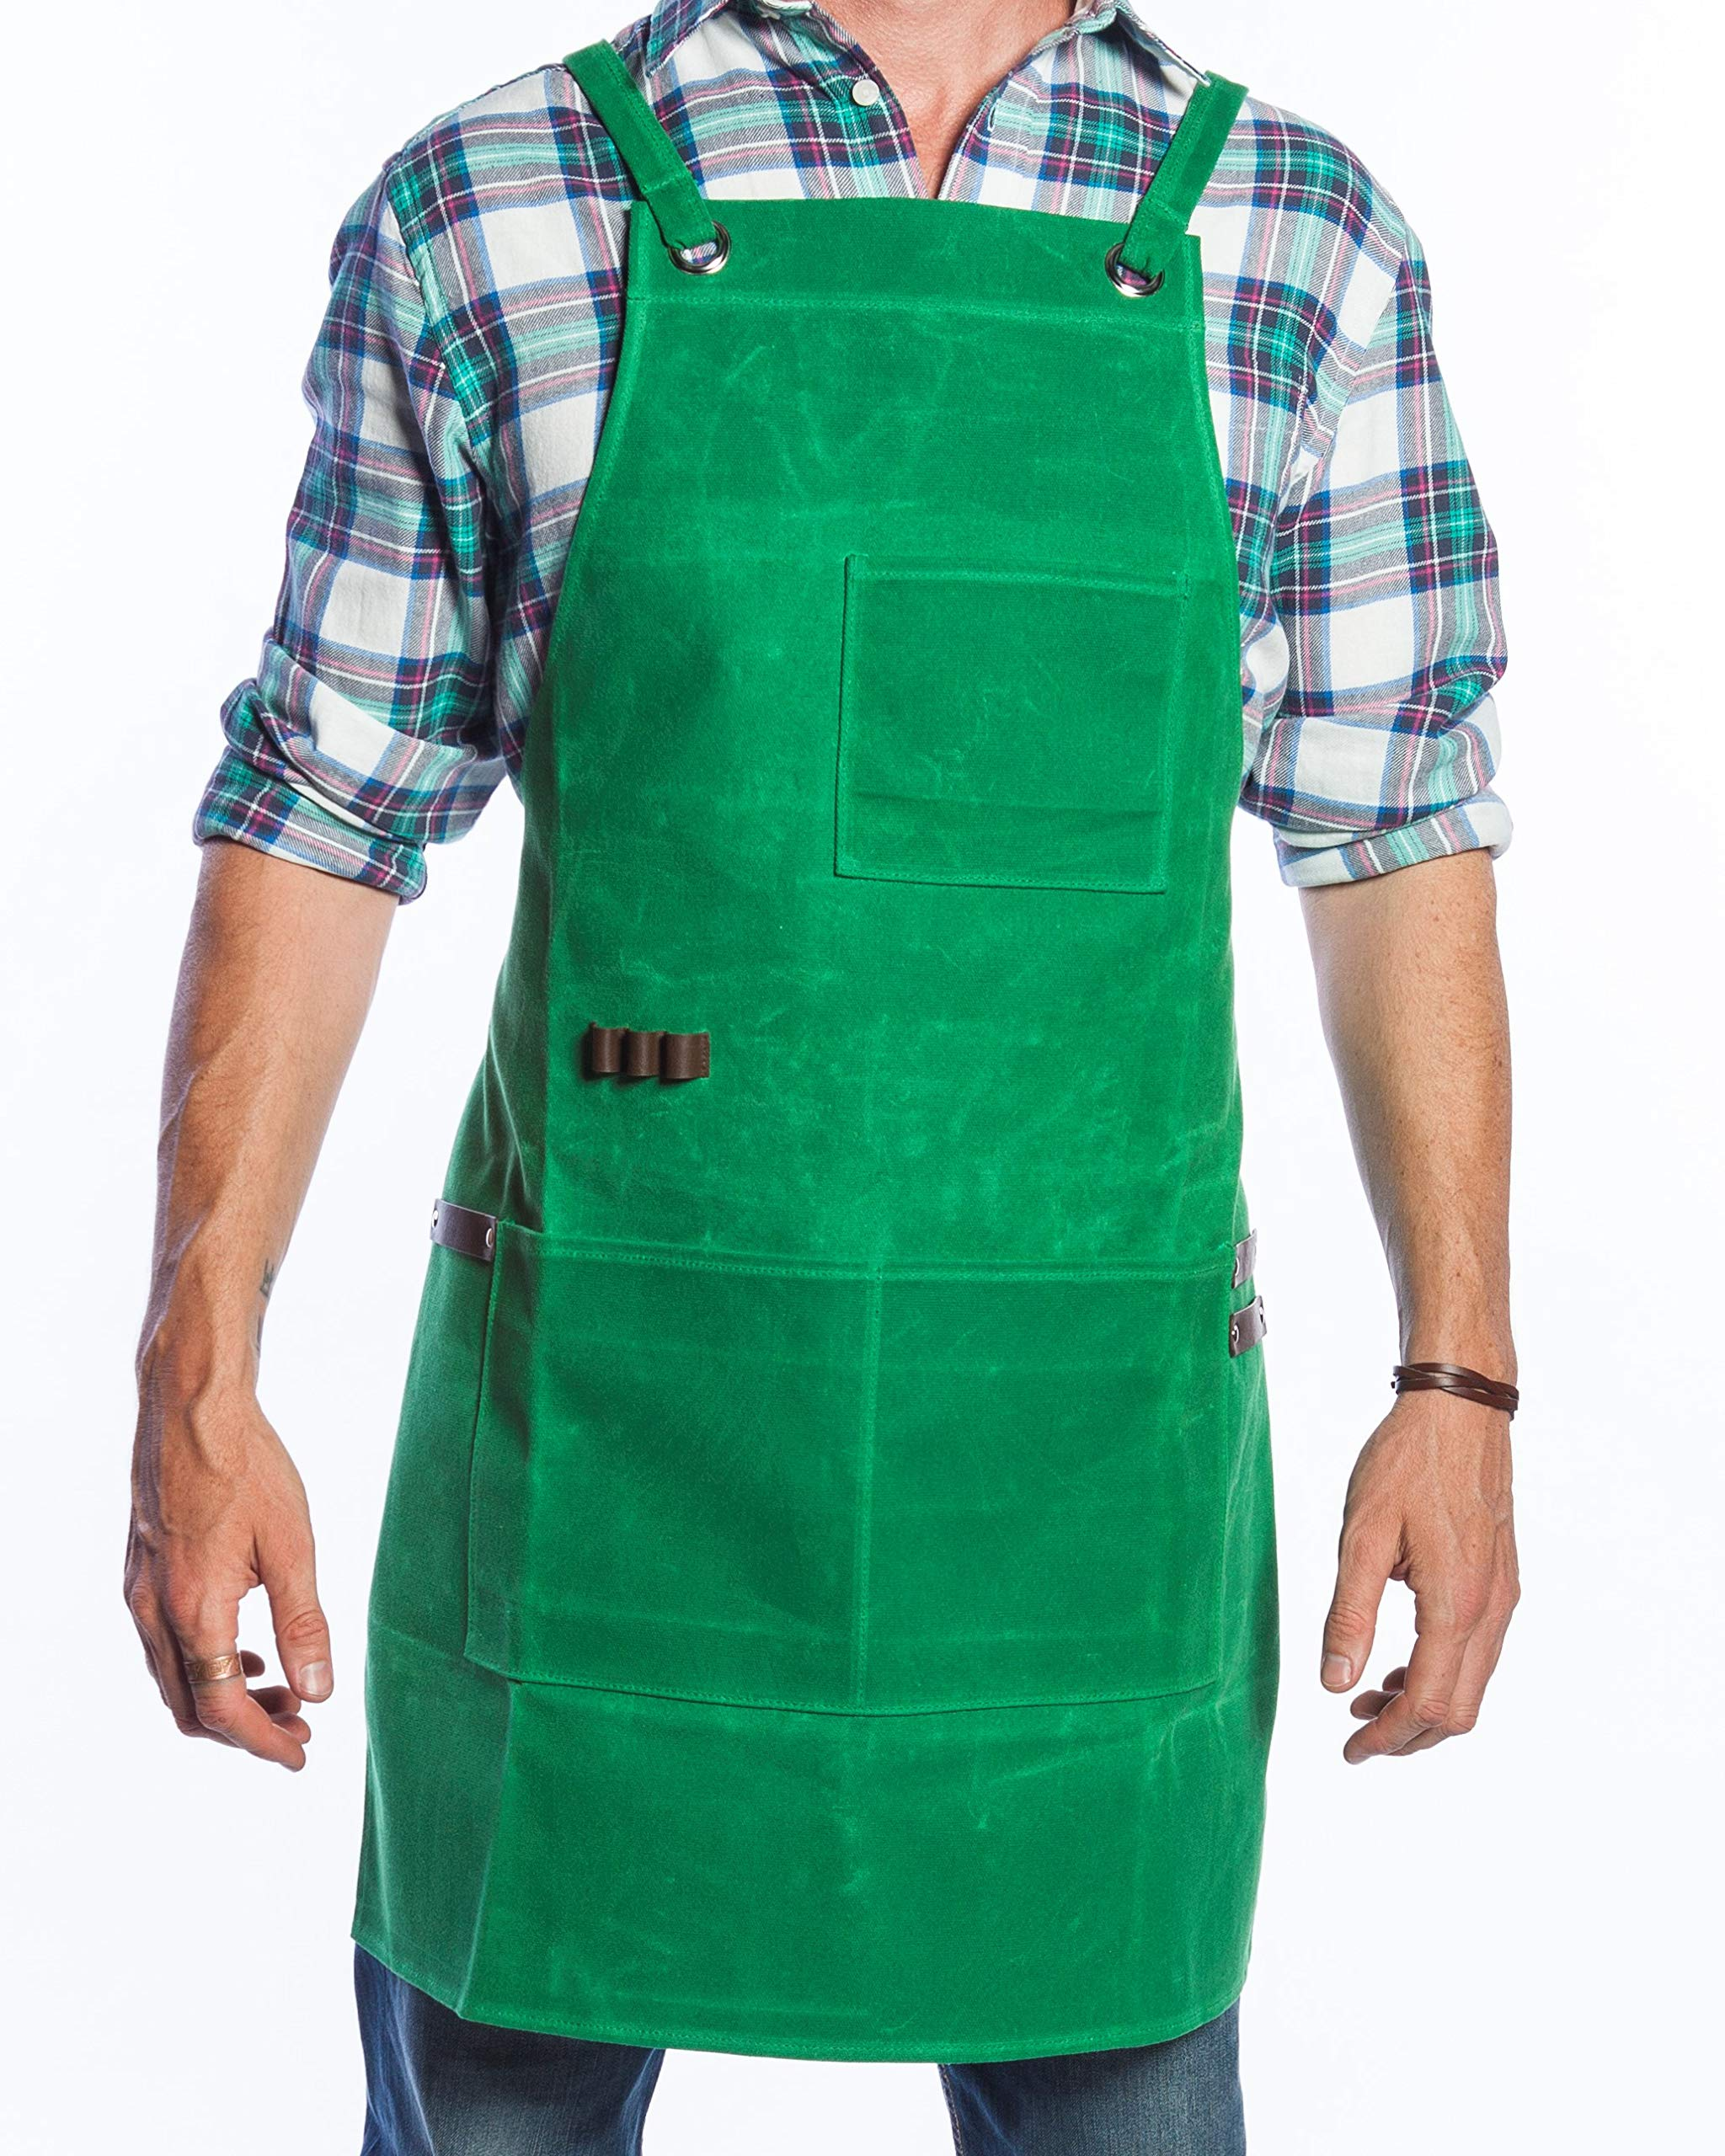 Shop Apron Waxed Canvas Work Apron with Pockets | Waterproof, Fully Adjustable Up to 45 Inch waist - Woodworking Blacksmith Tool Shop